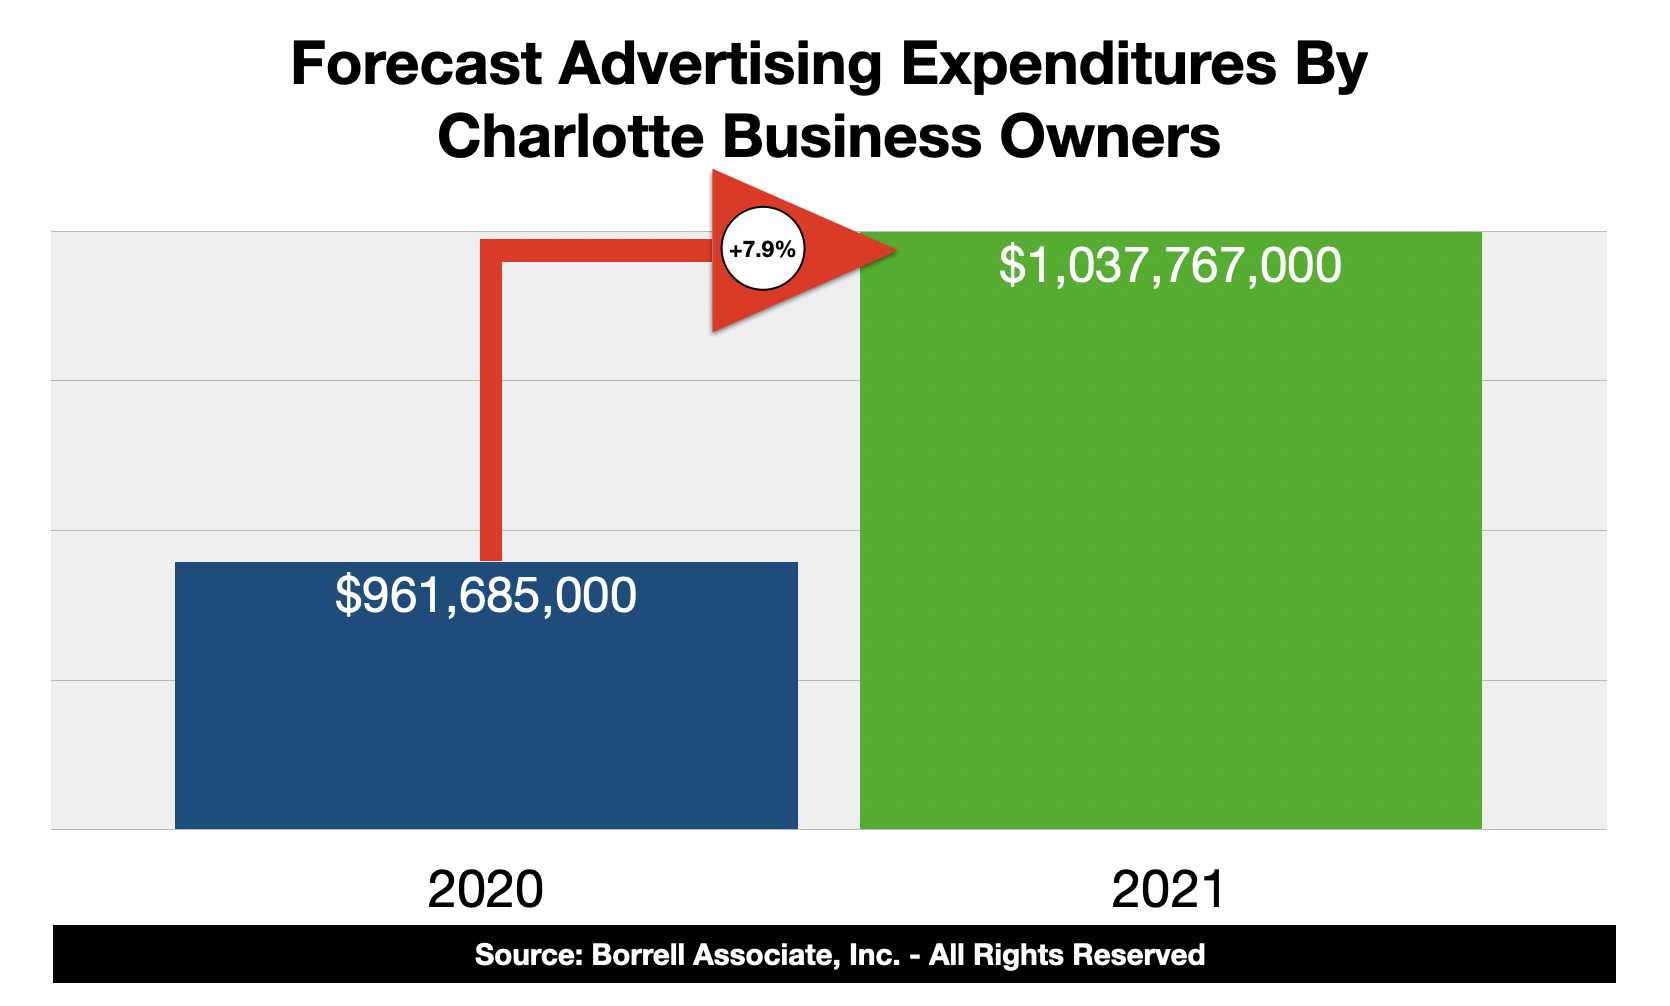 Advertising Expenditures in Charlotte 2021